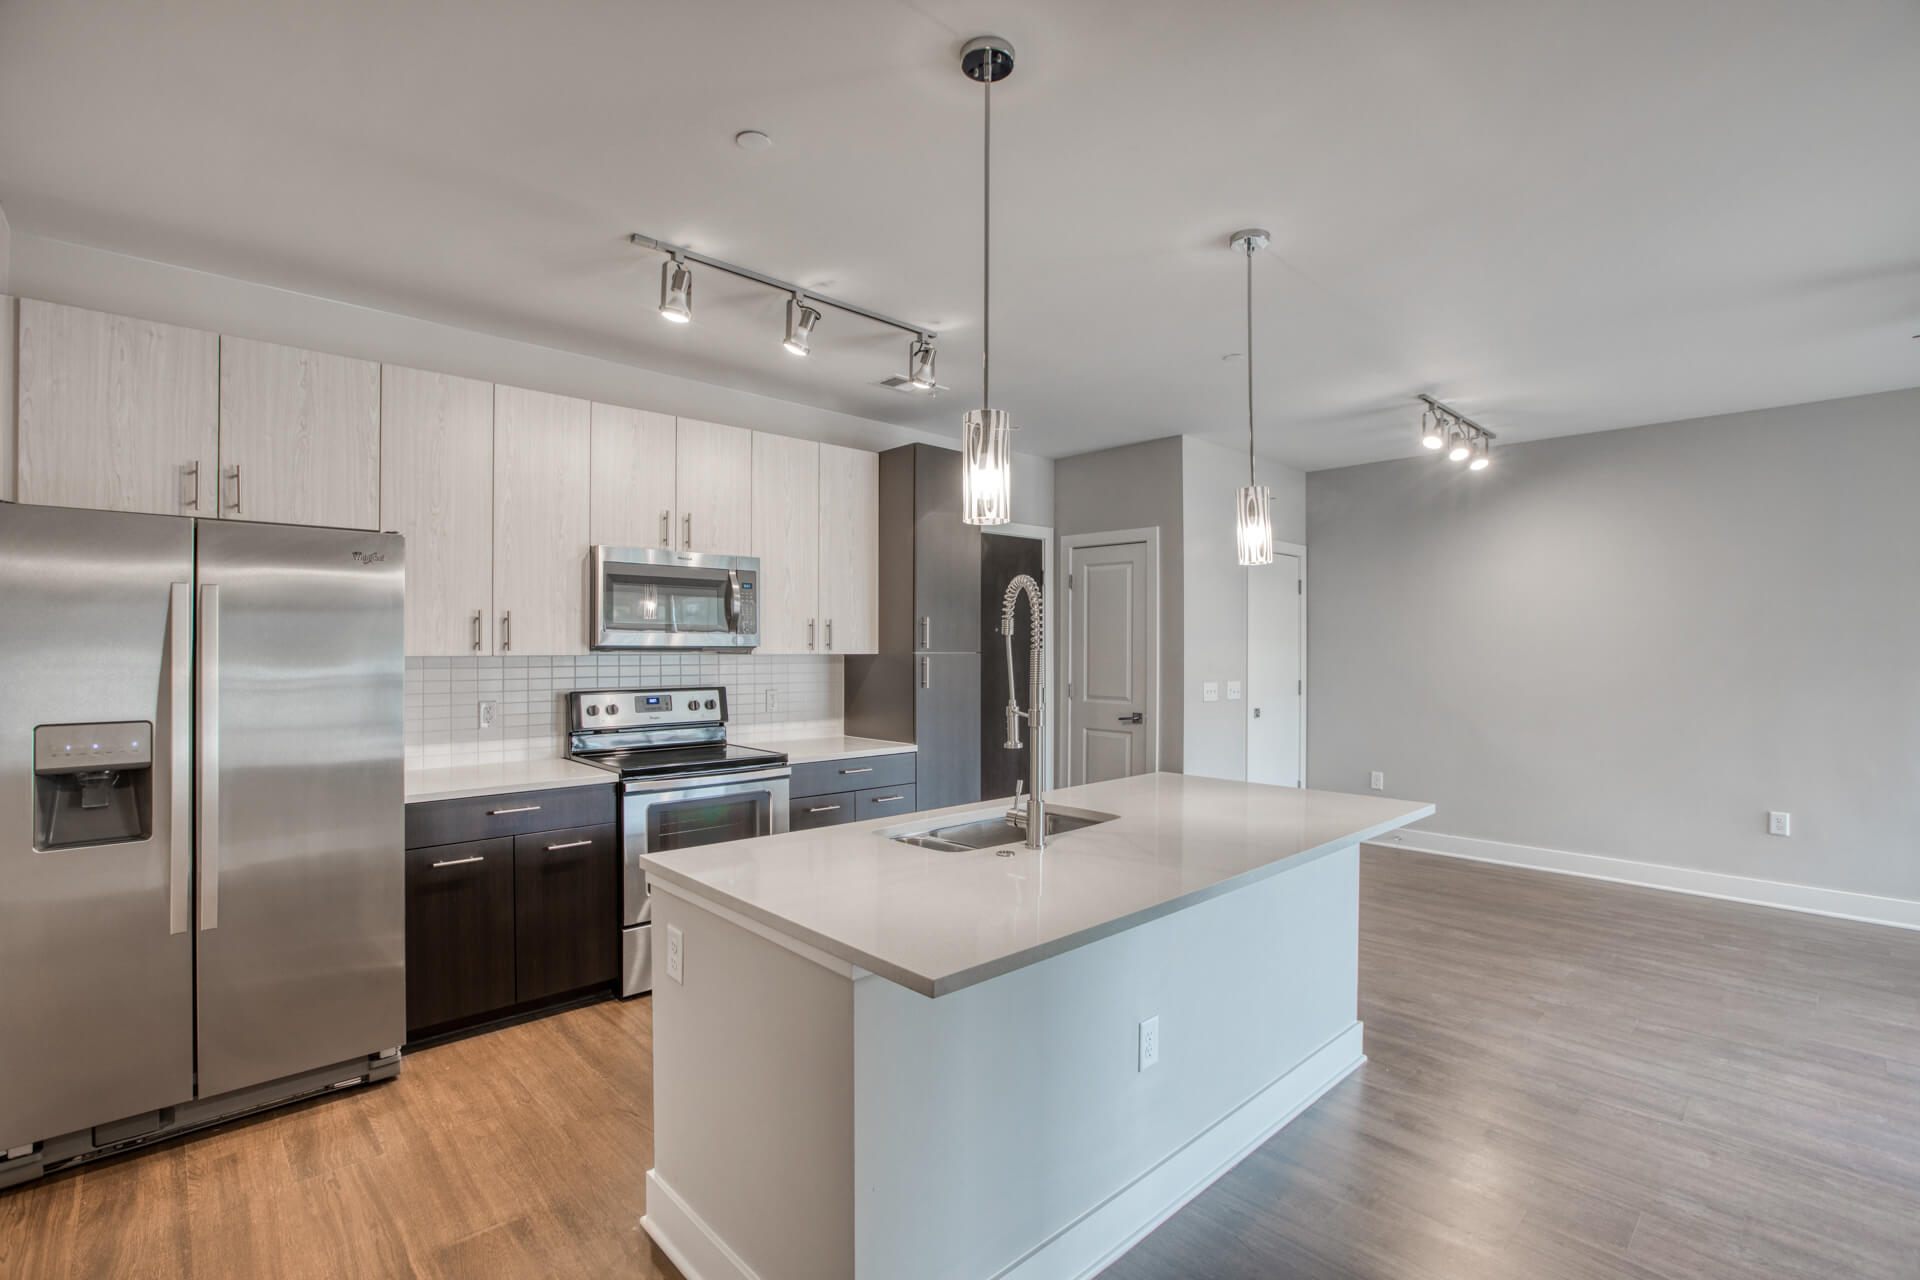 Modern Kitchen With Stainless Steel Appliances at Centric LoHi by Windsor, Denver, 80211